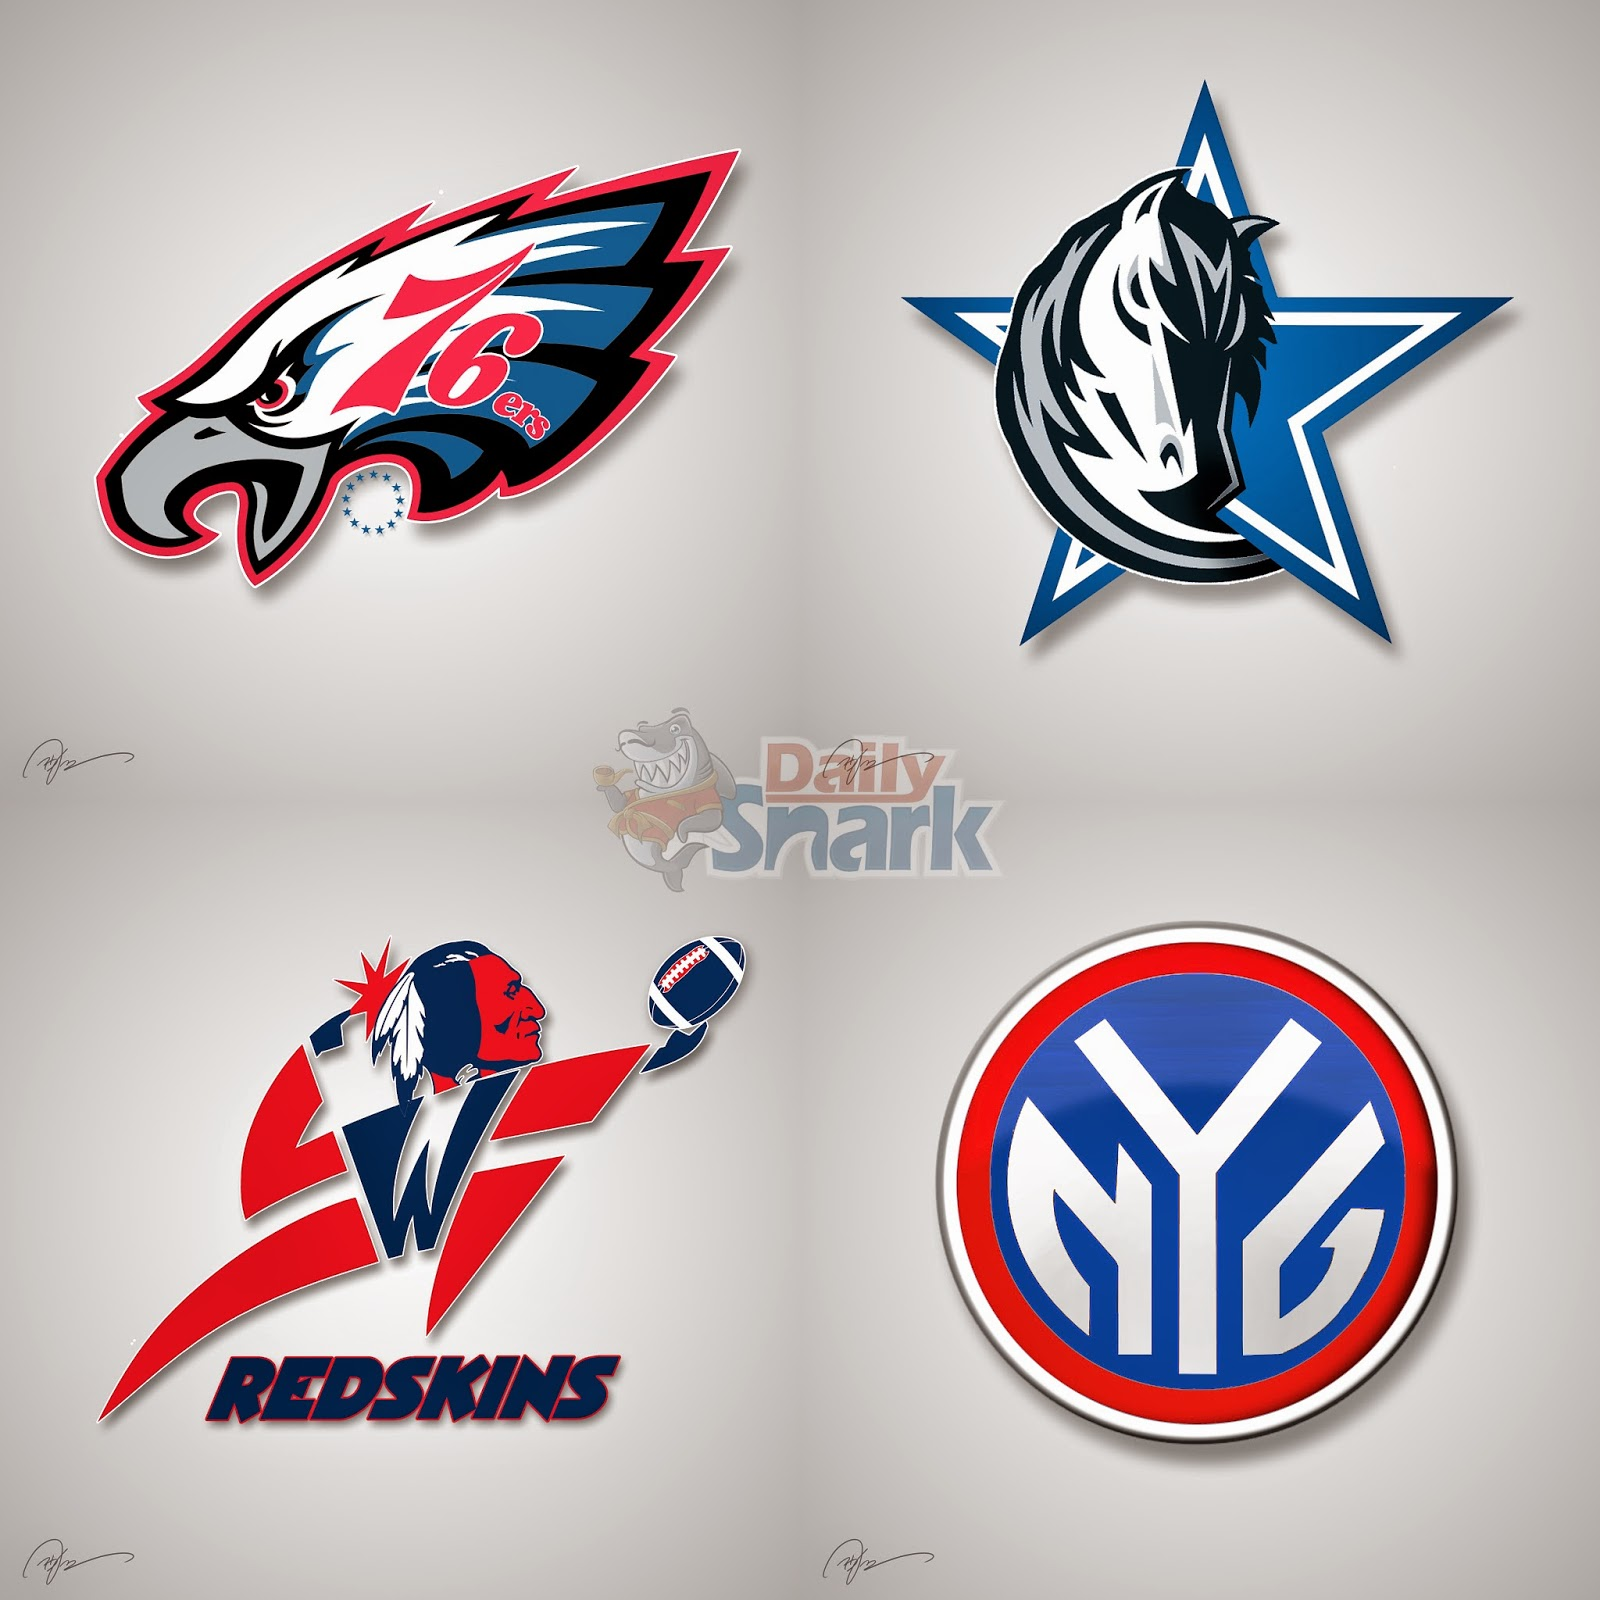 Falcons Vs Cowboys 2014 >> Check out this hybrid Boston Celtics-New England Patriots logo from the Daily Snark ...